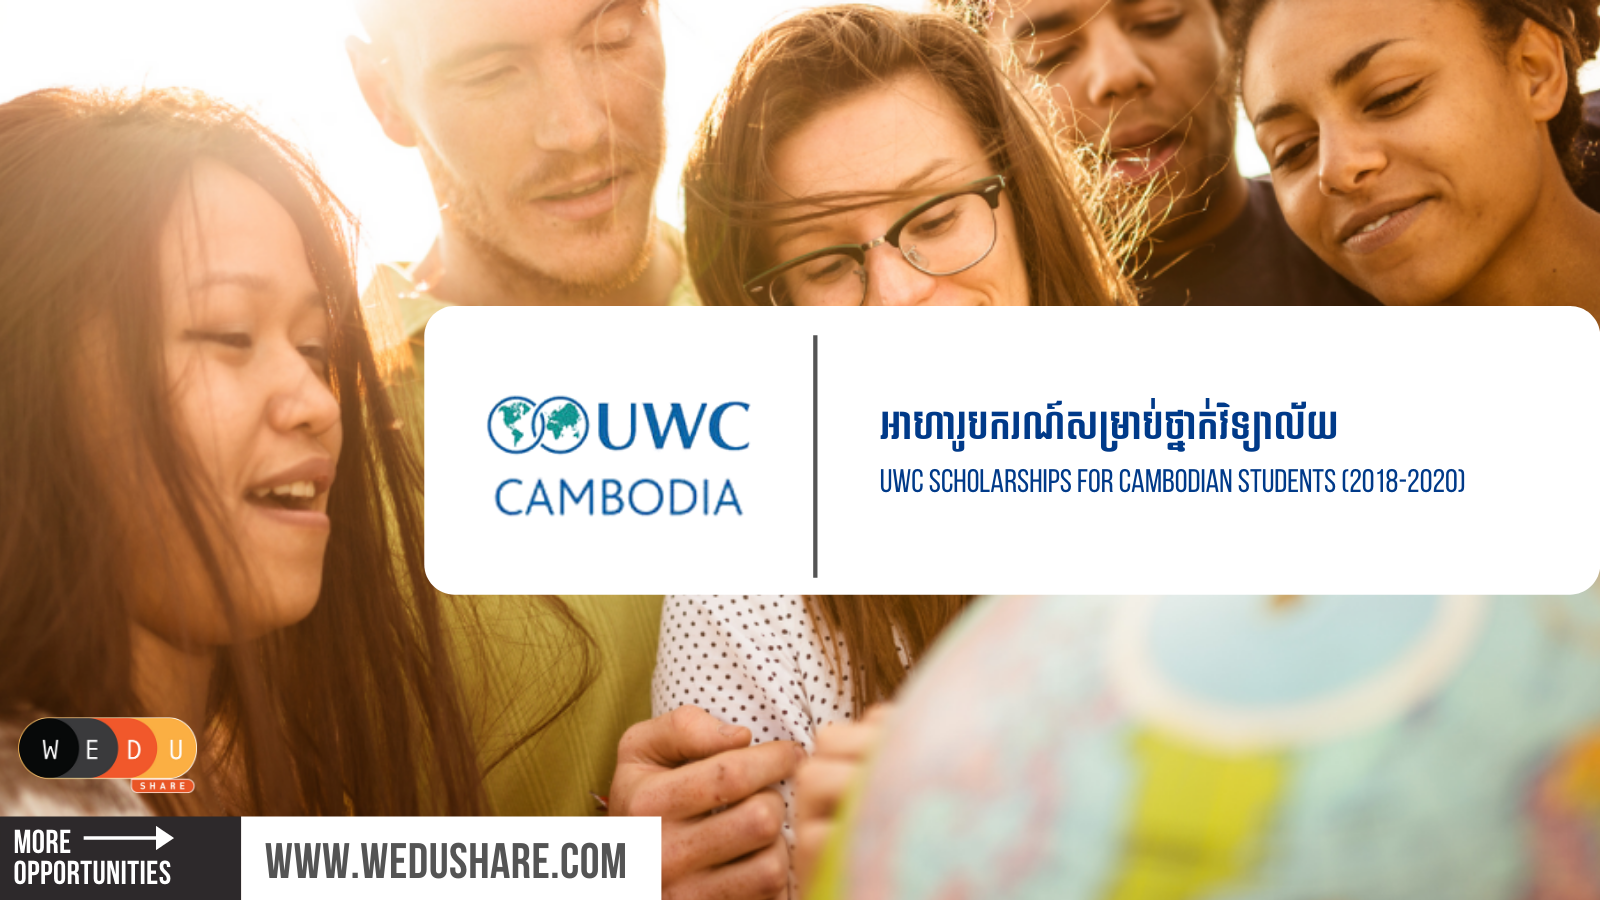 UWC Scholarships For Cambodian Students (2018-2020)